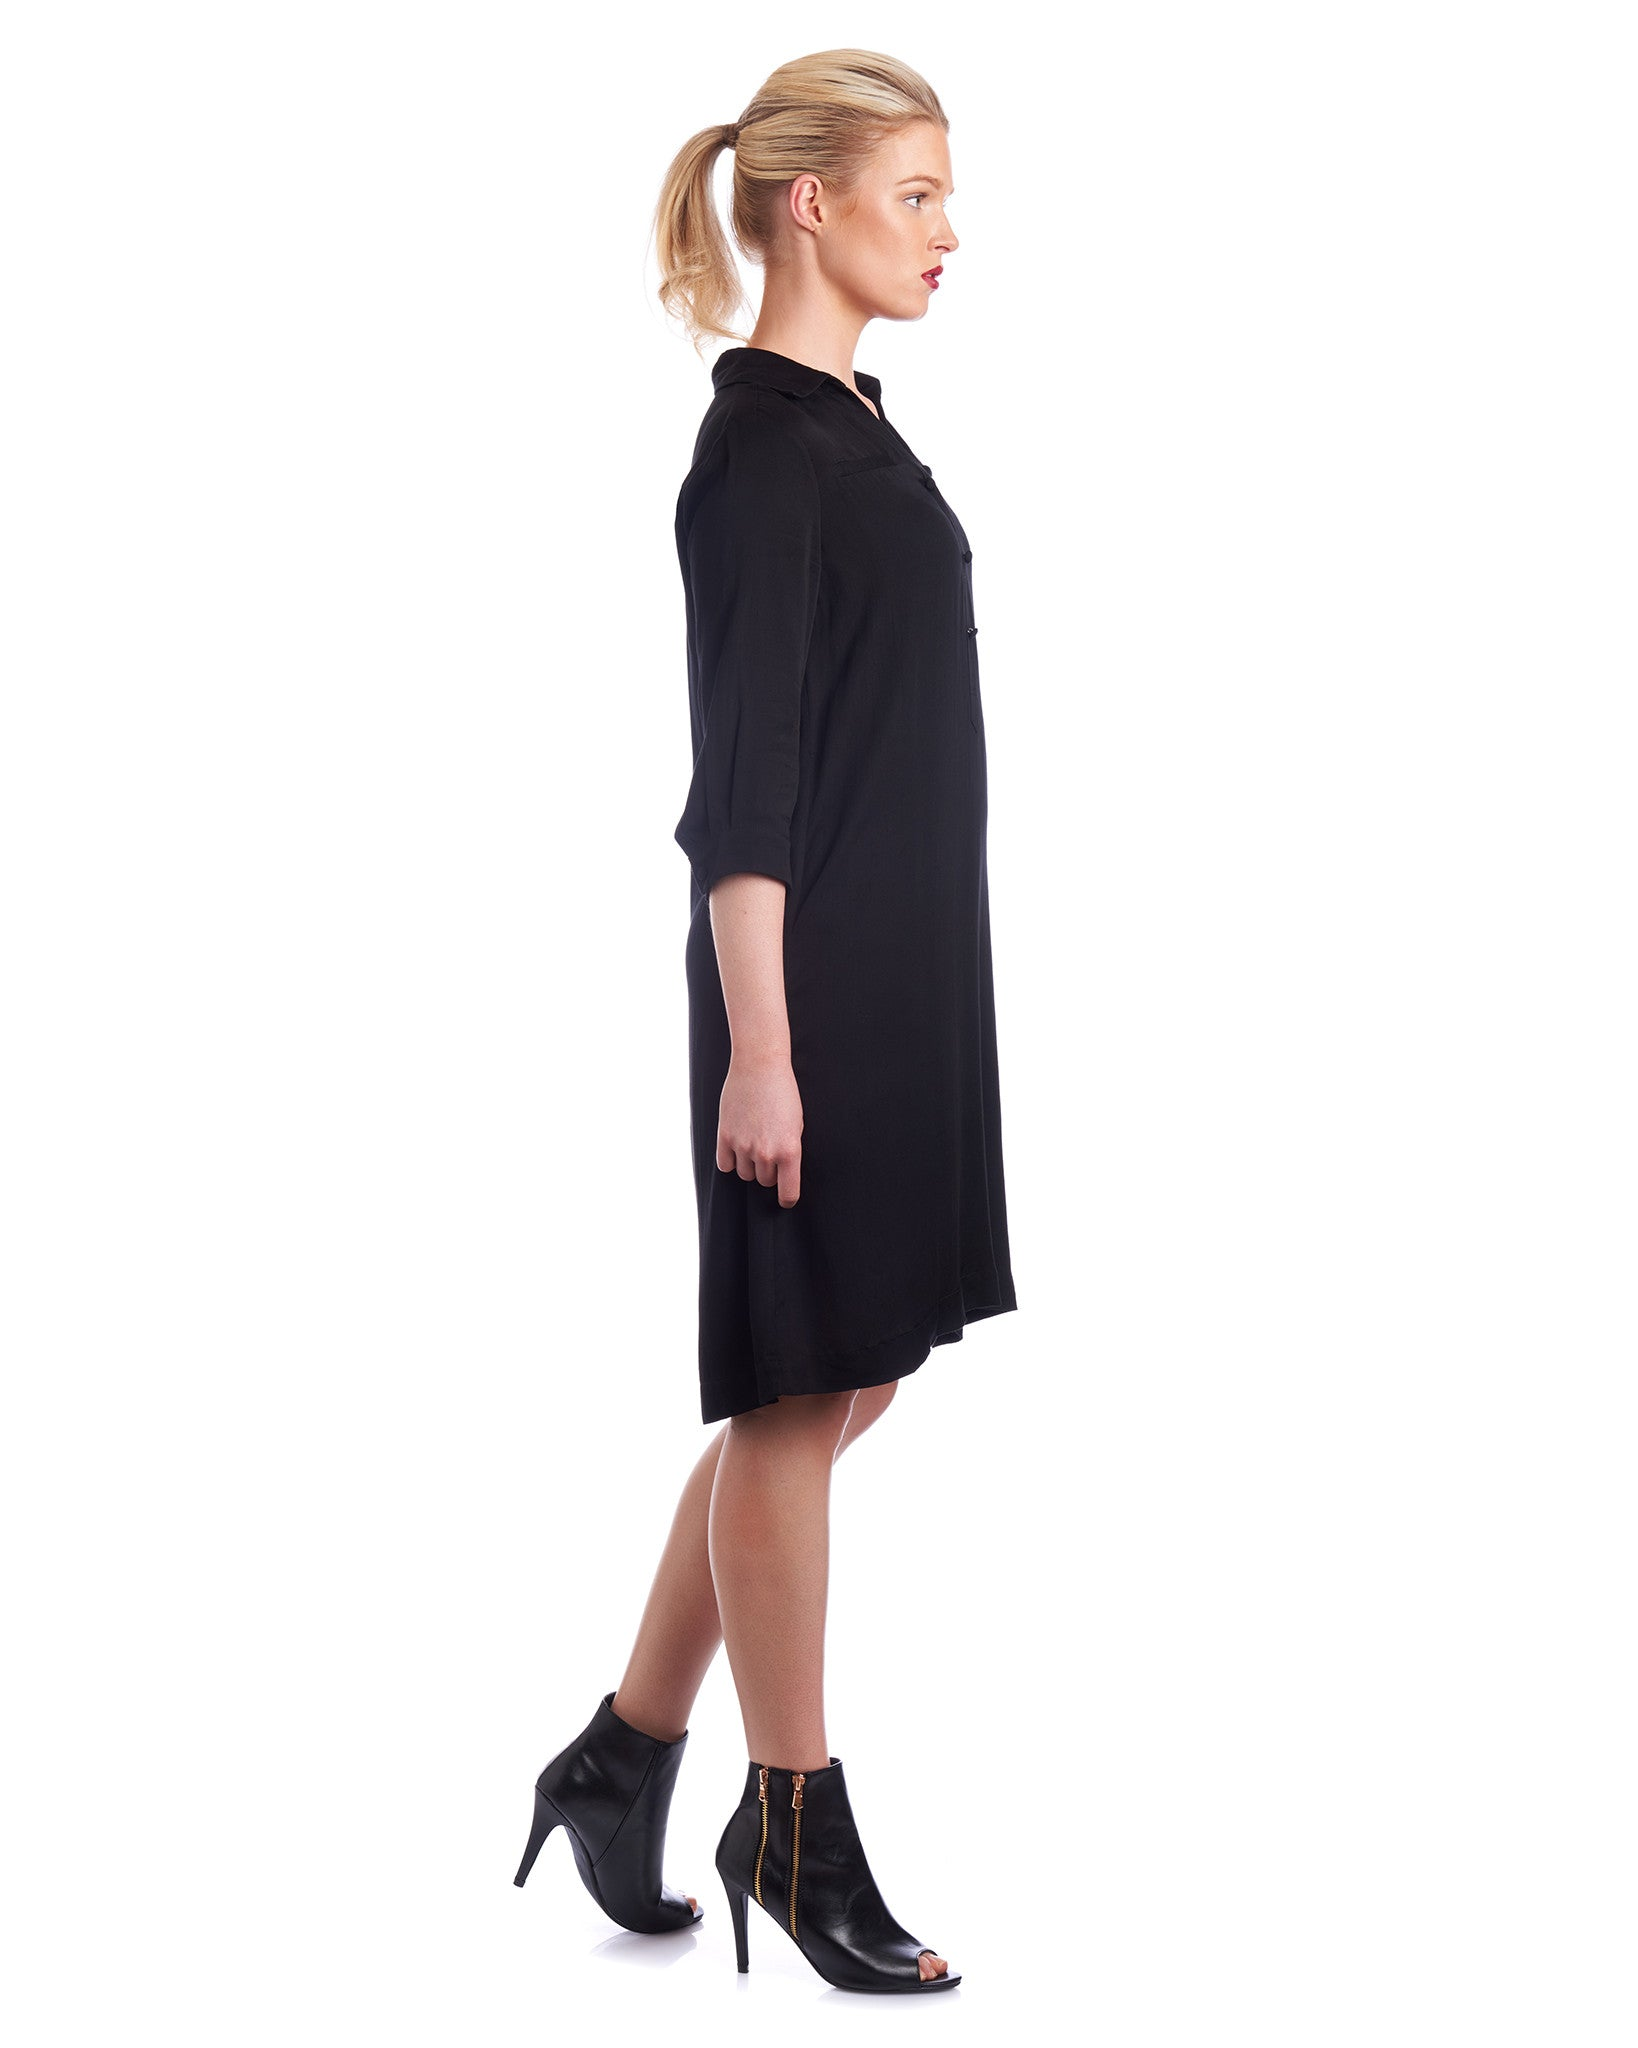 Customise the sleeve length on this Tahlo shirt dress in black